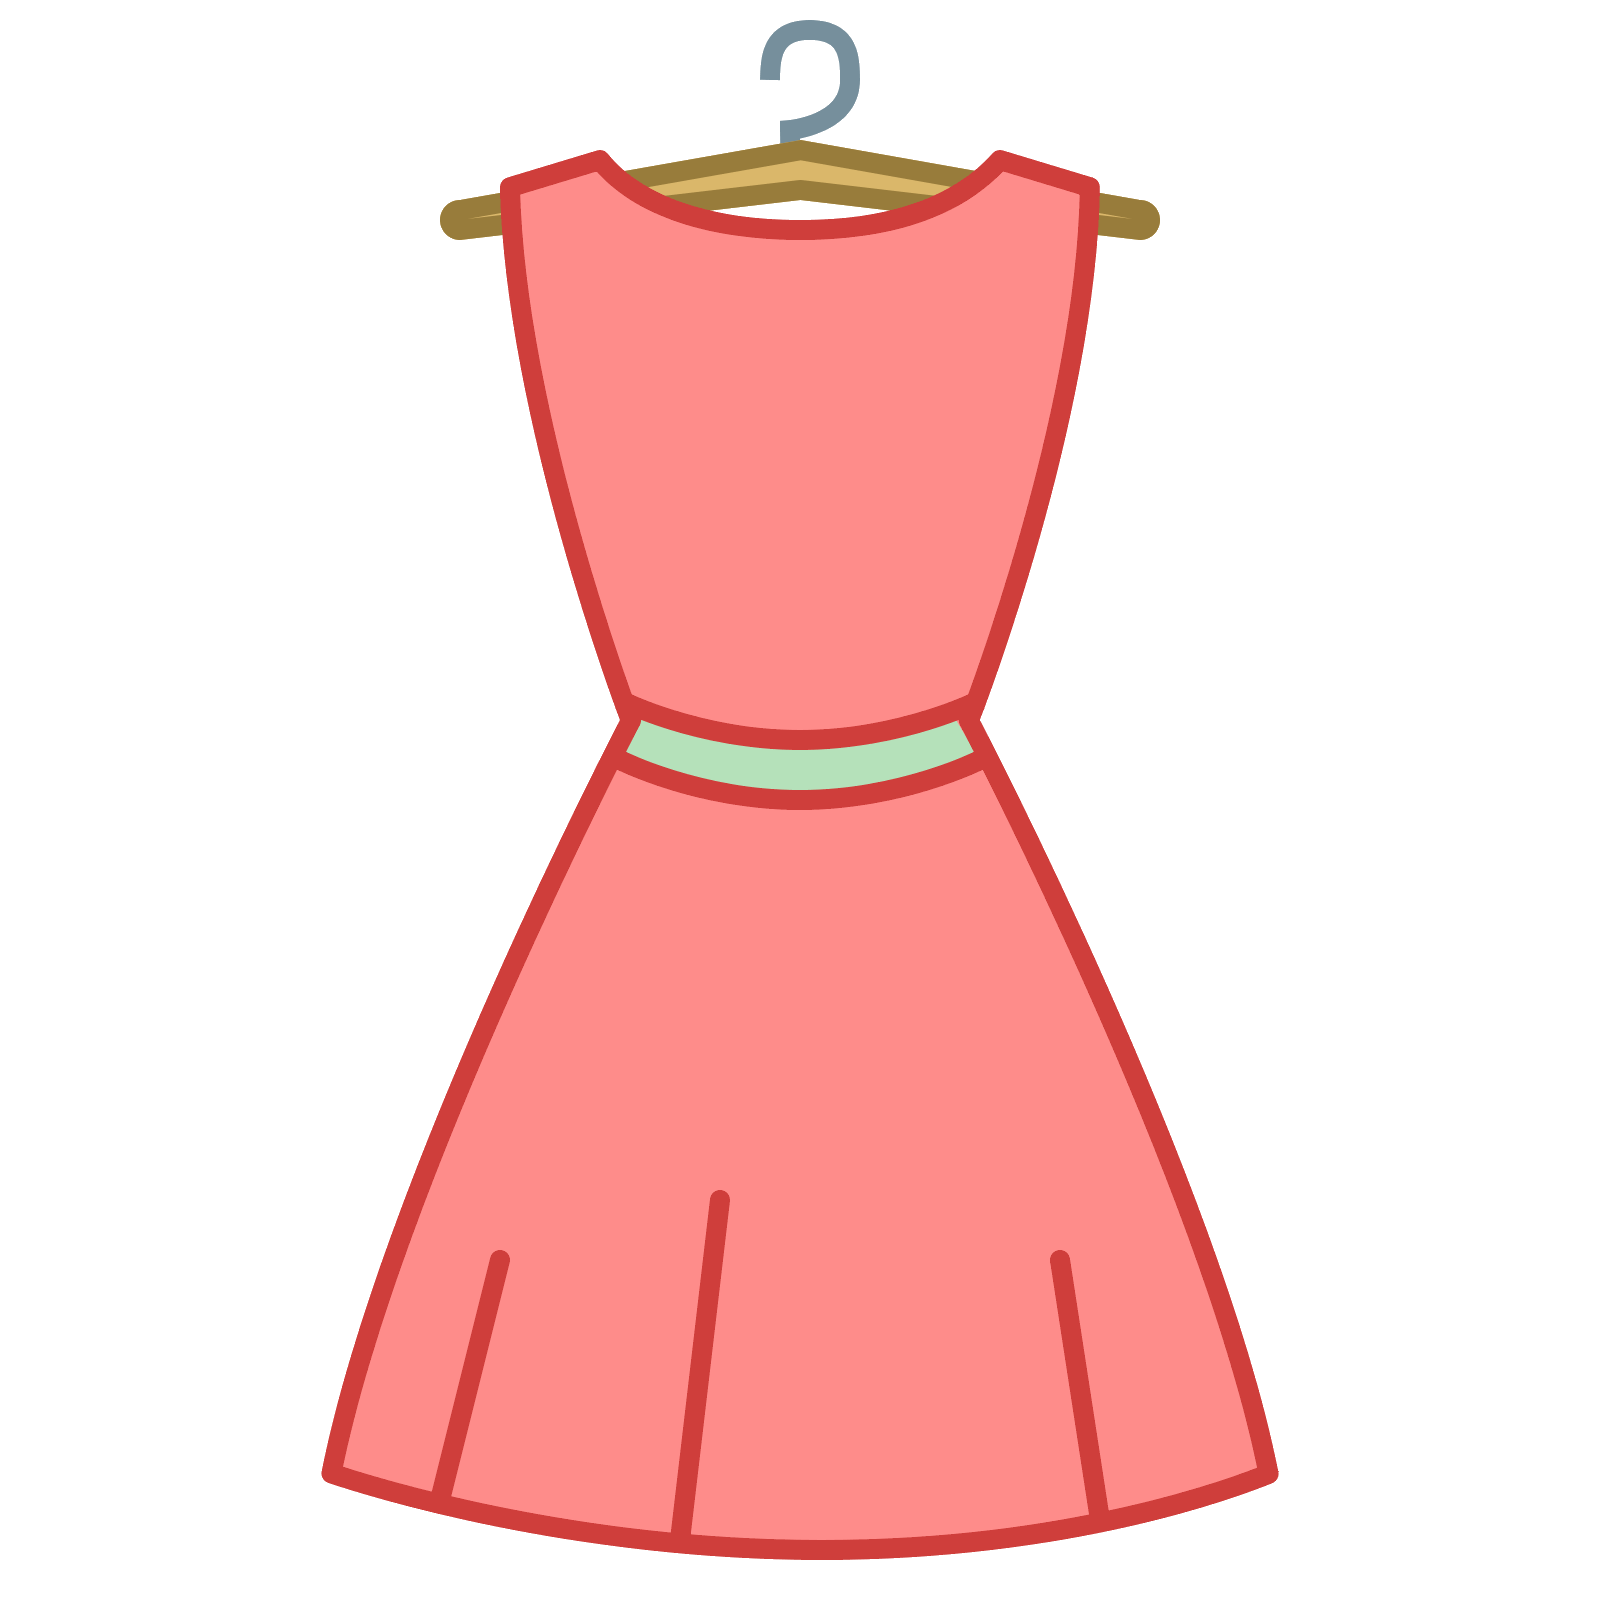 Computer icons clothing transprent. Dress clipart icon